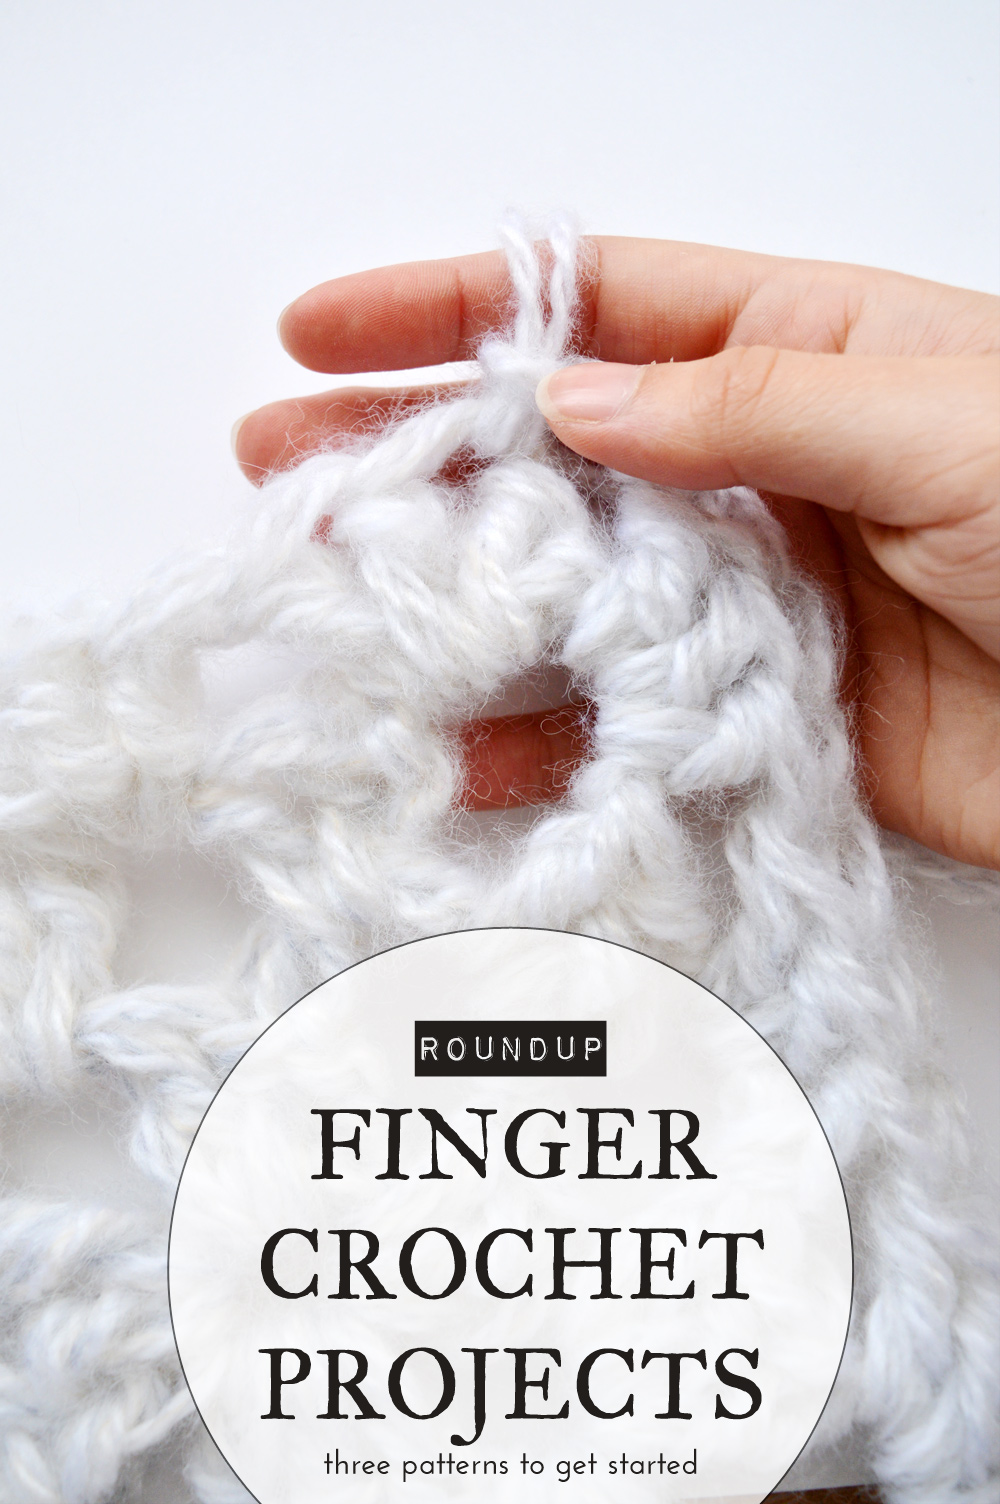 Finger crochet projects to get started